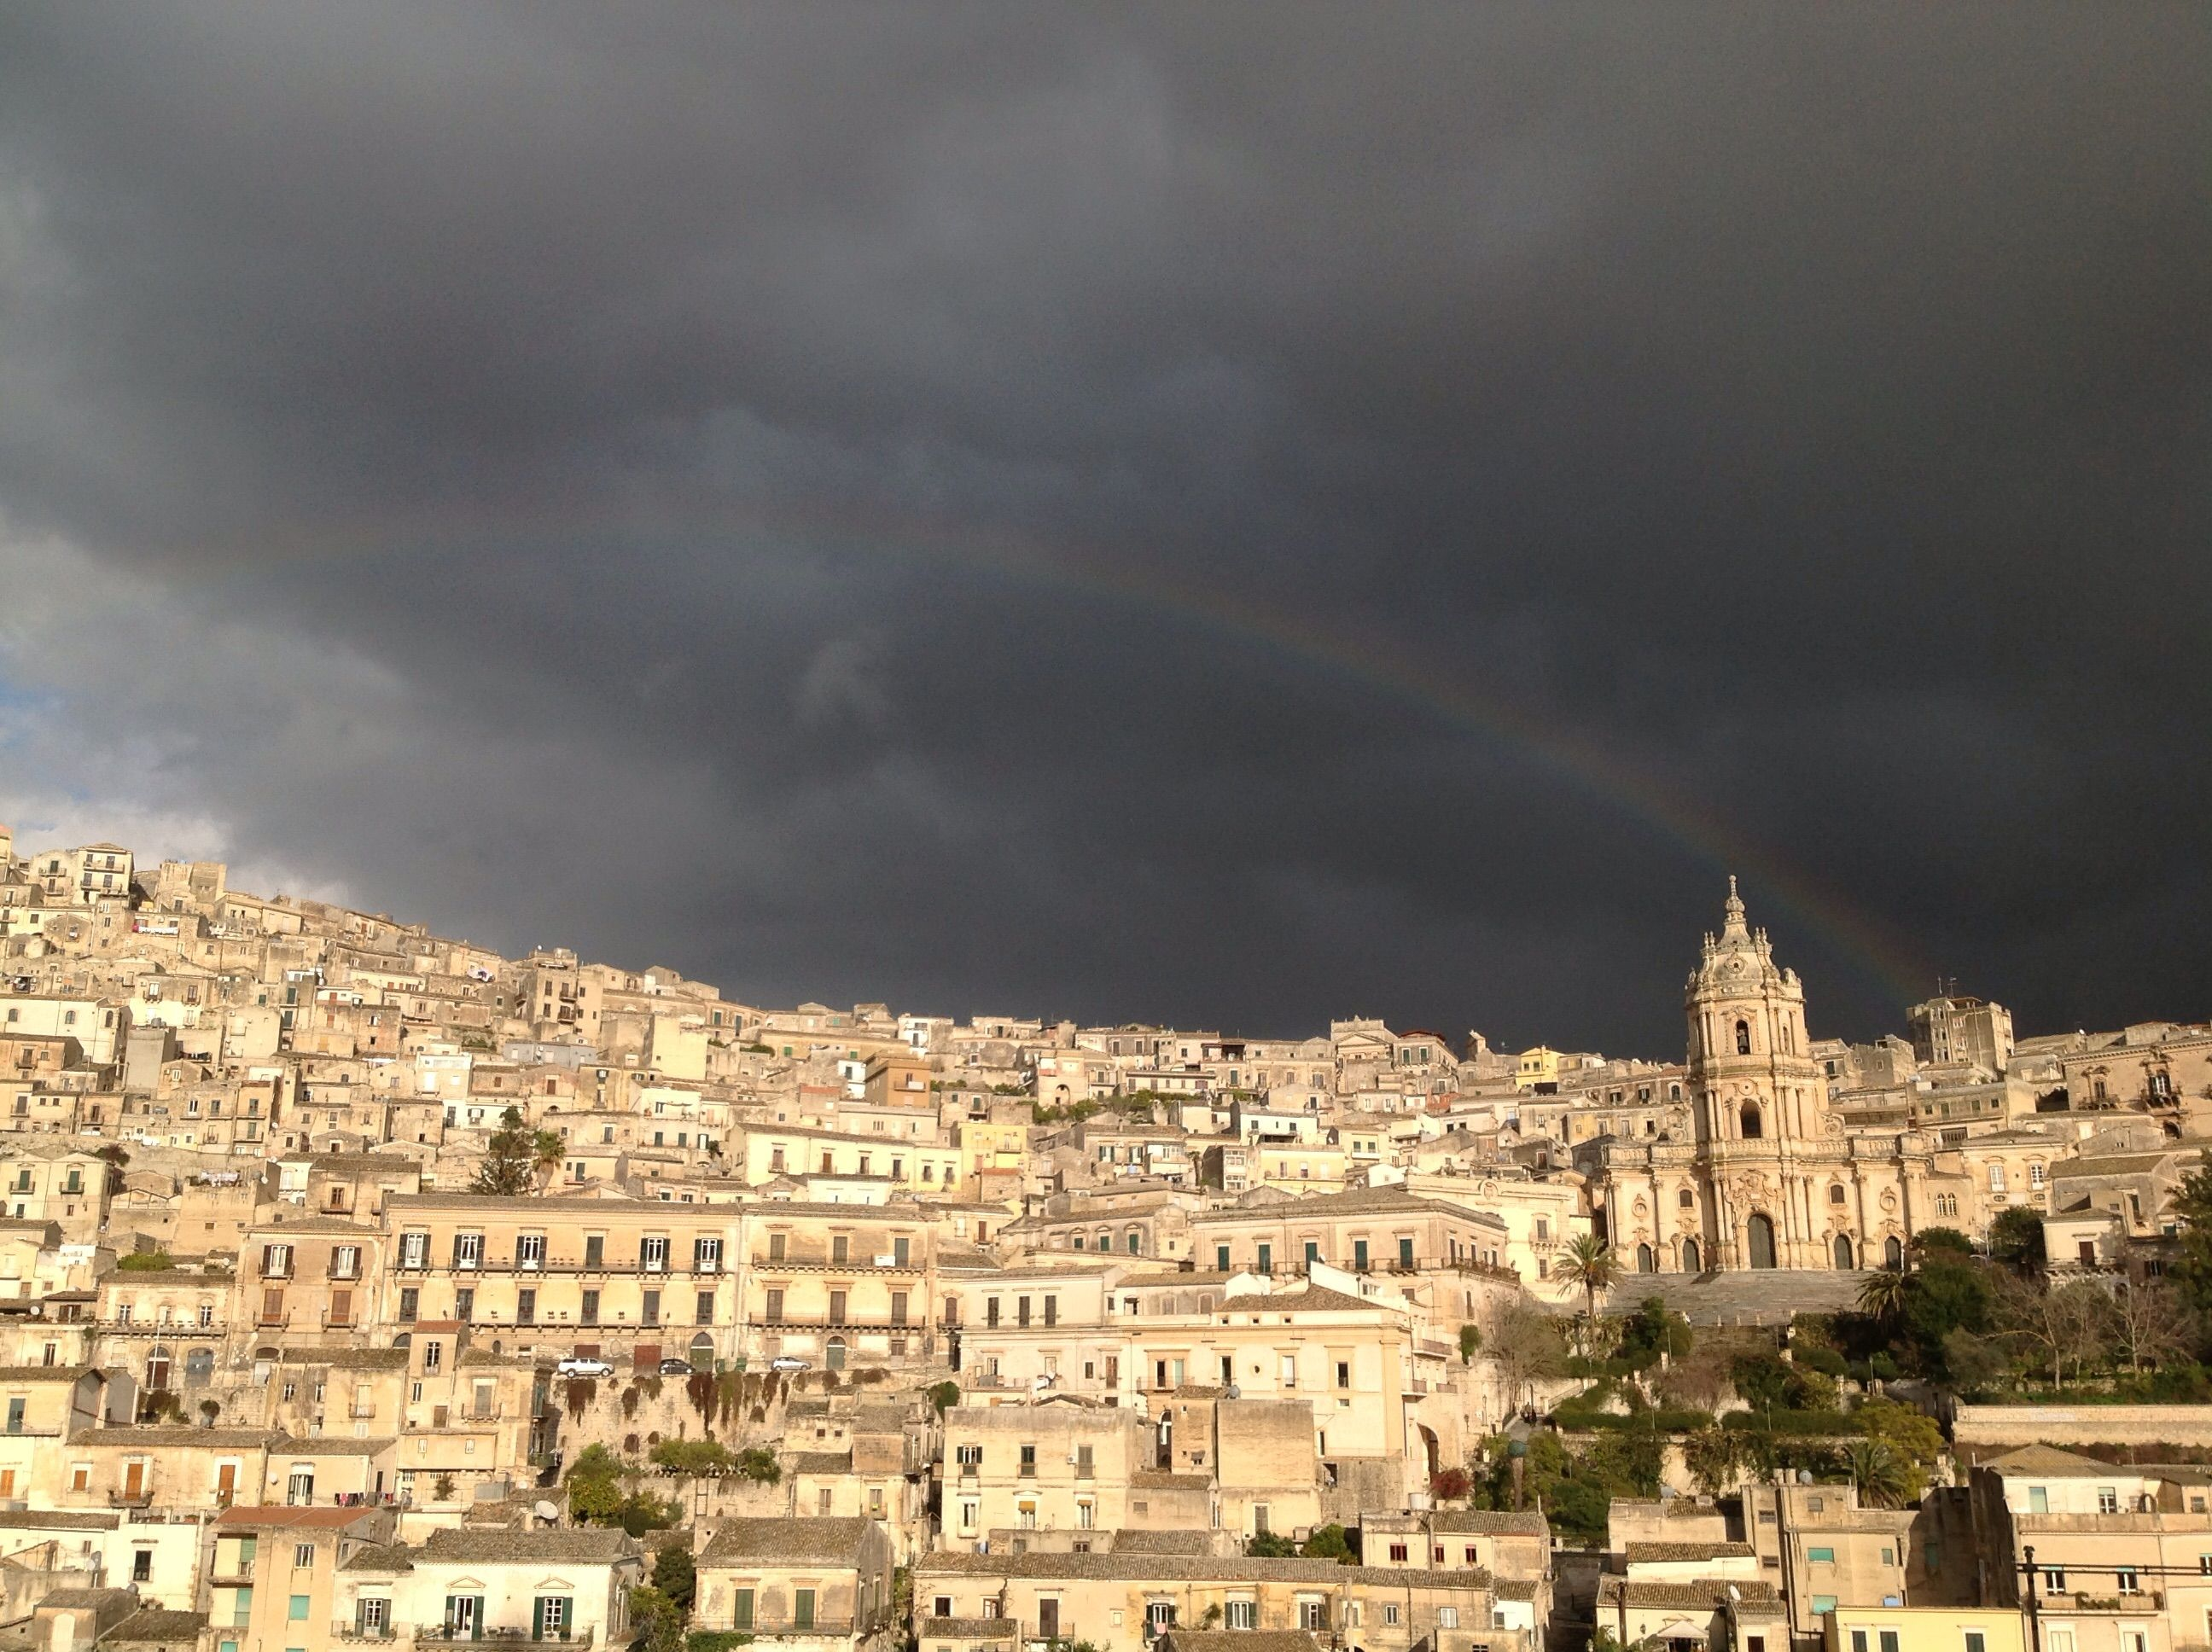 Rainbow over Saint George's Cathedral in Modica as seen from our house www.sangiorgiosuitesmodica.it